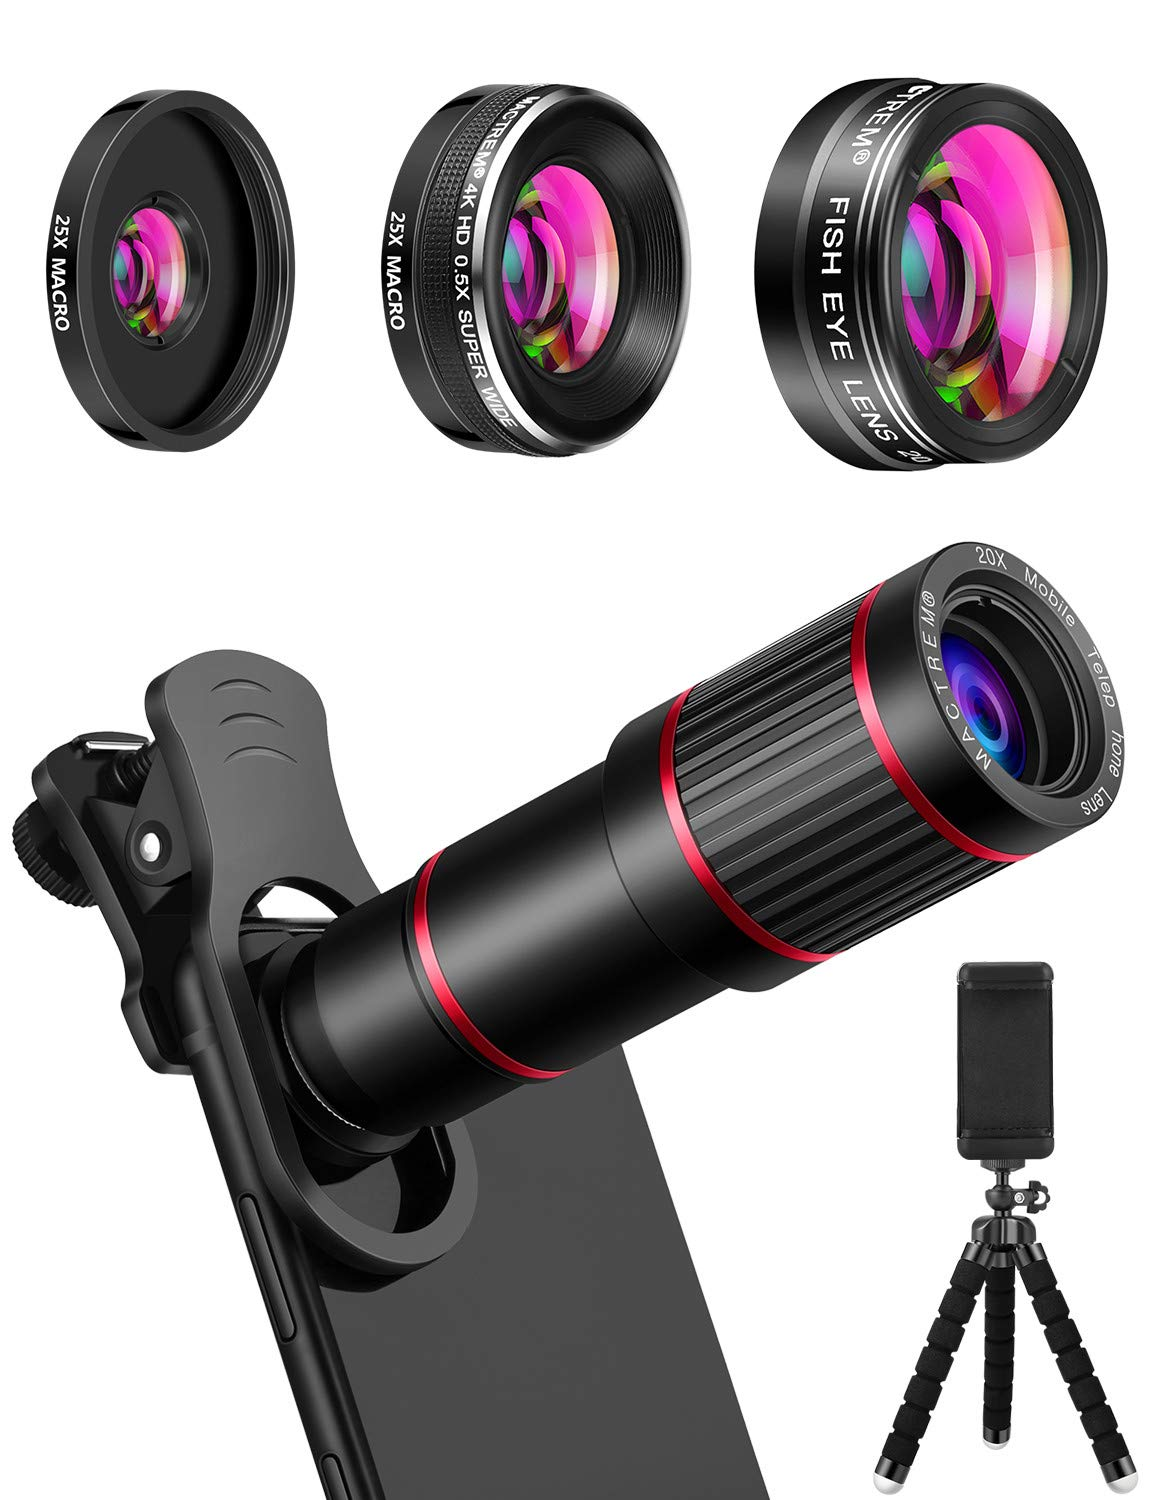 MACTREM Phone Camera Lens Phone Lens Kit 9 in 1, 20X Telephoto Lens, 205° Fisheye Lens, 0.5X Wide Angle Lens & 25X Macro Lens(Screwed Together), Compatible with iPhone 8 7 6 6s Plus X XS XR Samsung by MACTREM